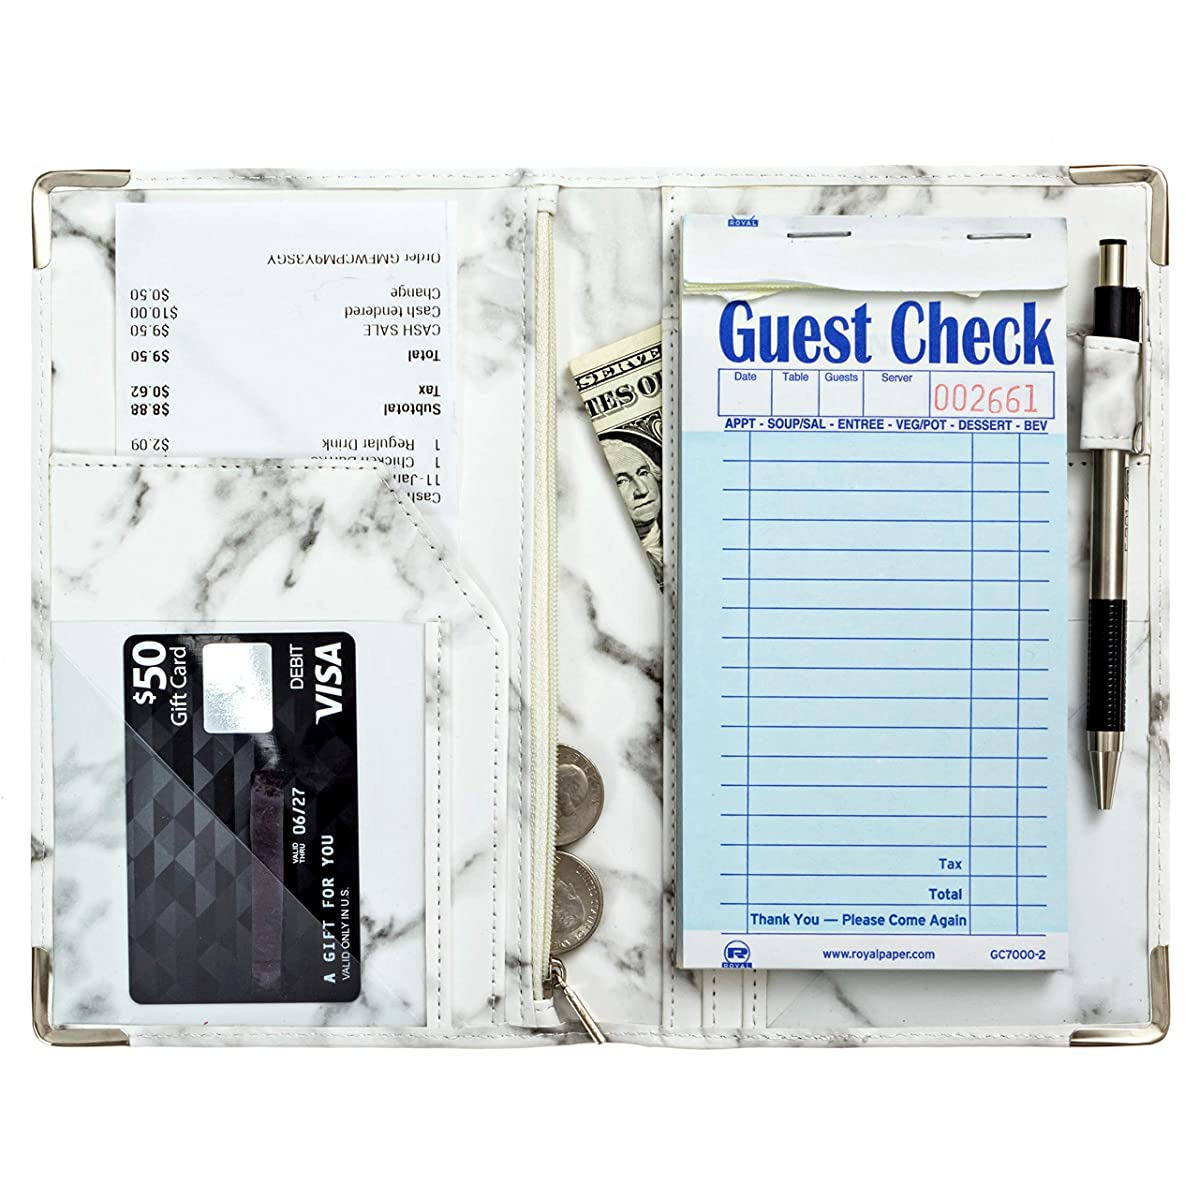 Server Plus Server Books for Waitress with Zipper Pocket, Pen Holder, Marble Leather, Metal Corners, 9 Pockets | Marble Server Book with Zipper Pocket Fits Restaurant Guest Check Order Pad and Apron